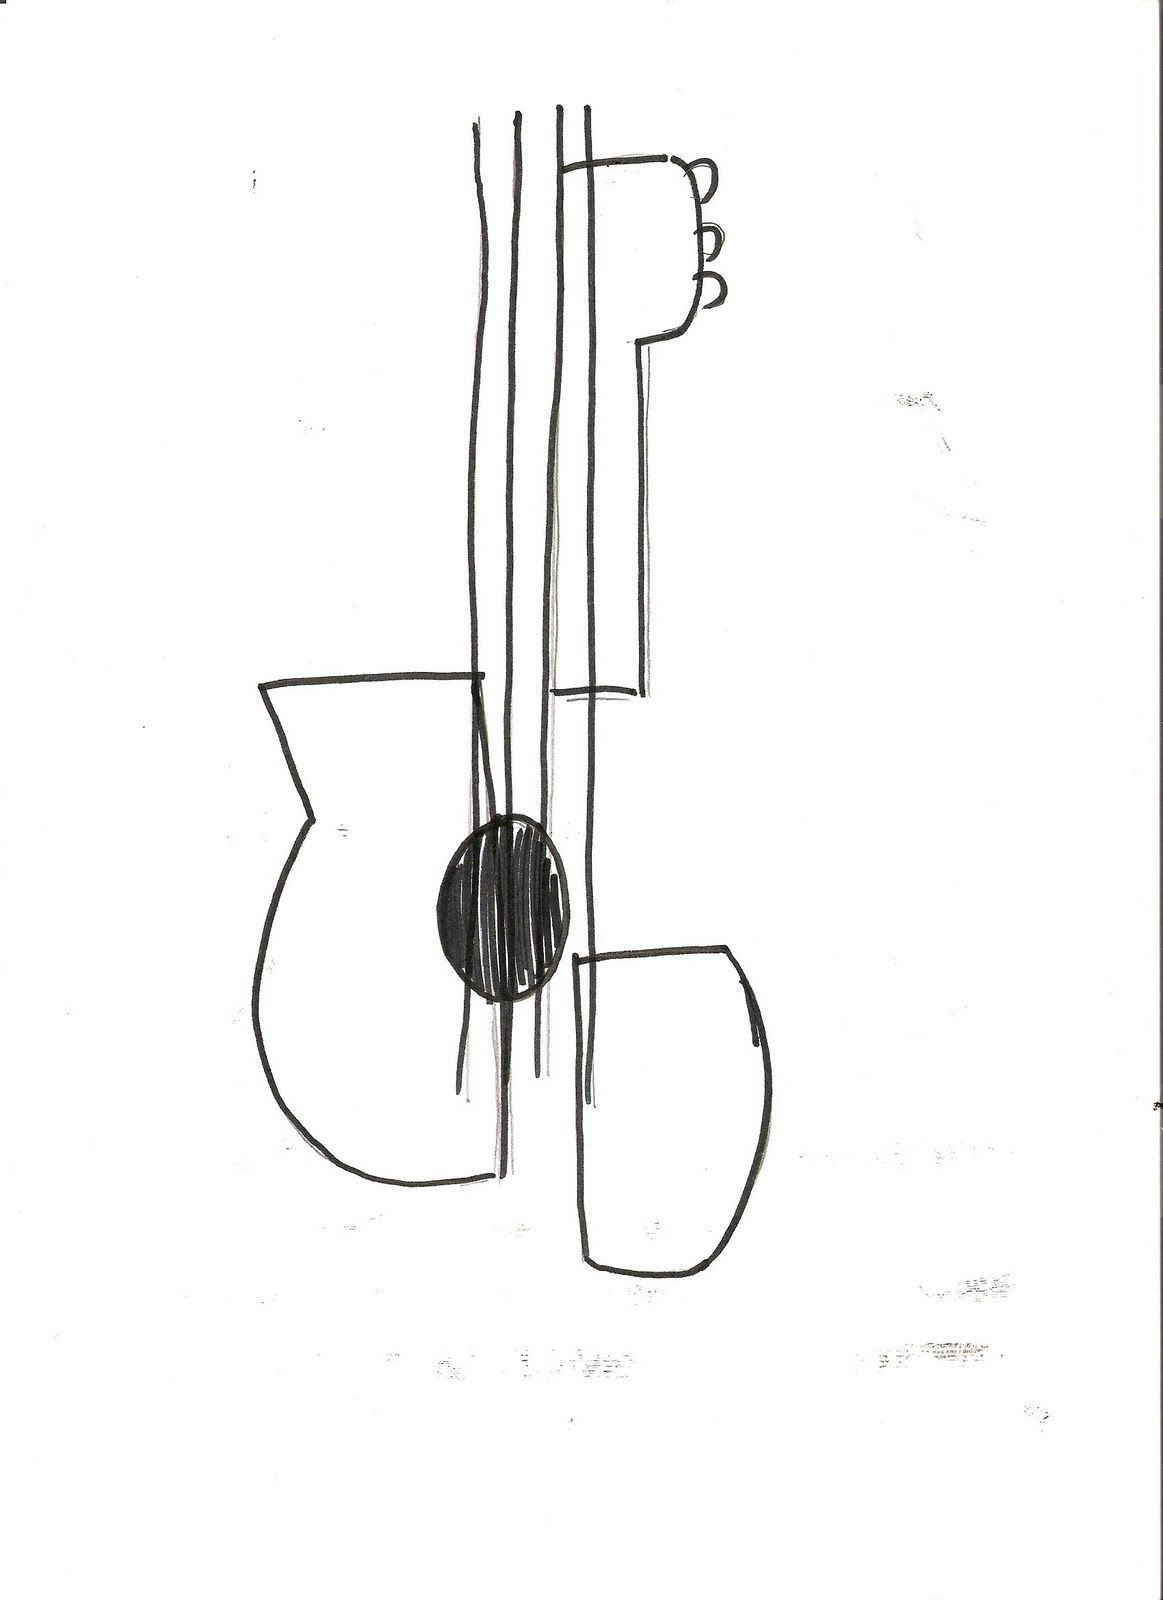 Contour Line Drawing Guitar : Picasso guitar drawings google search possible tattoos